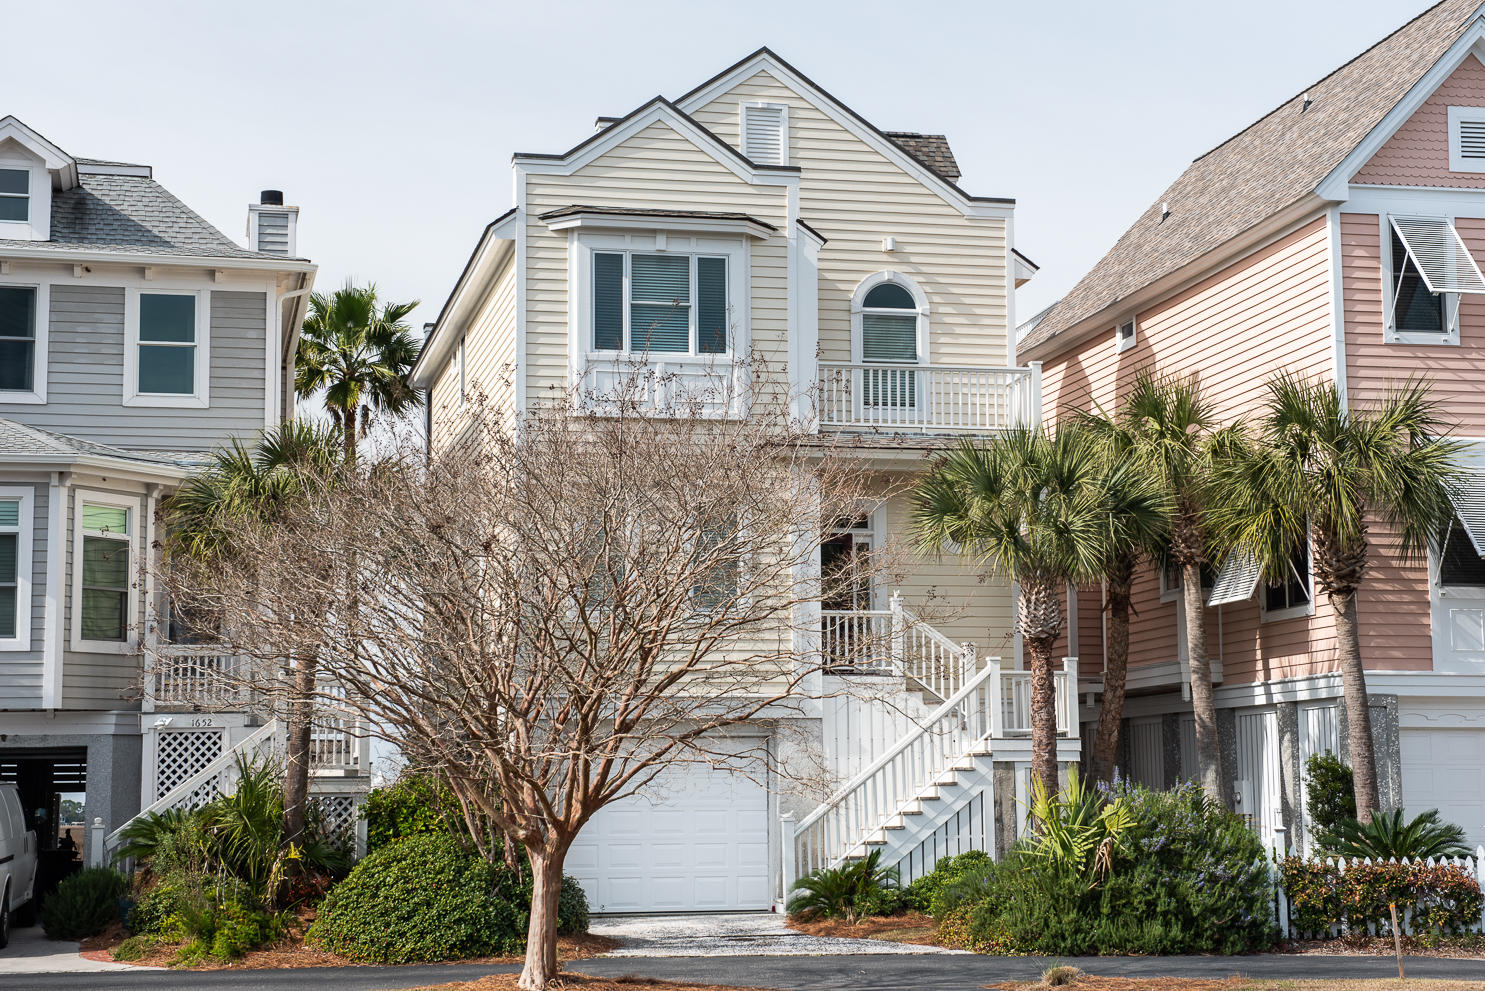 Tolers Cove Homes For Sale - B-4 & B-5 Tolers Cove Marina 70ft + Home, Mount Pleasant, SC - 48